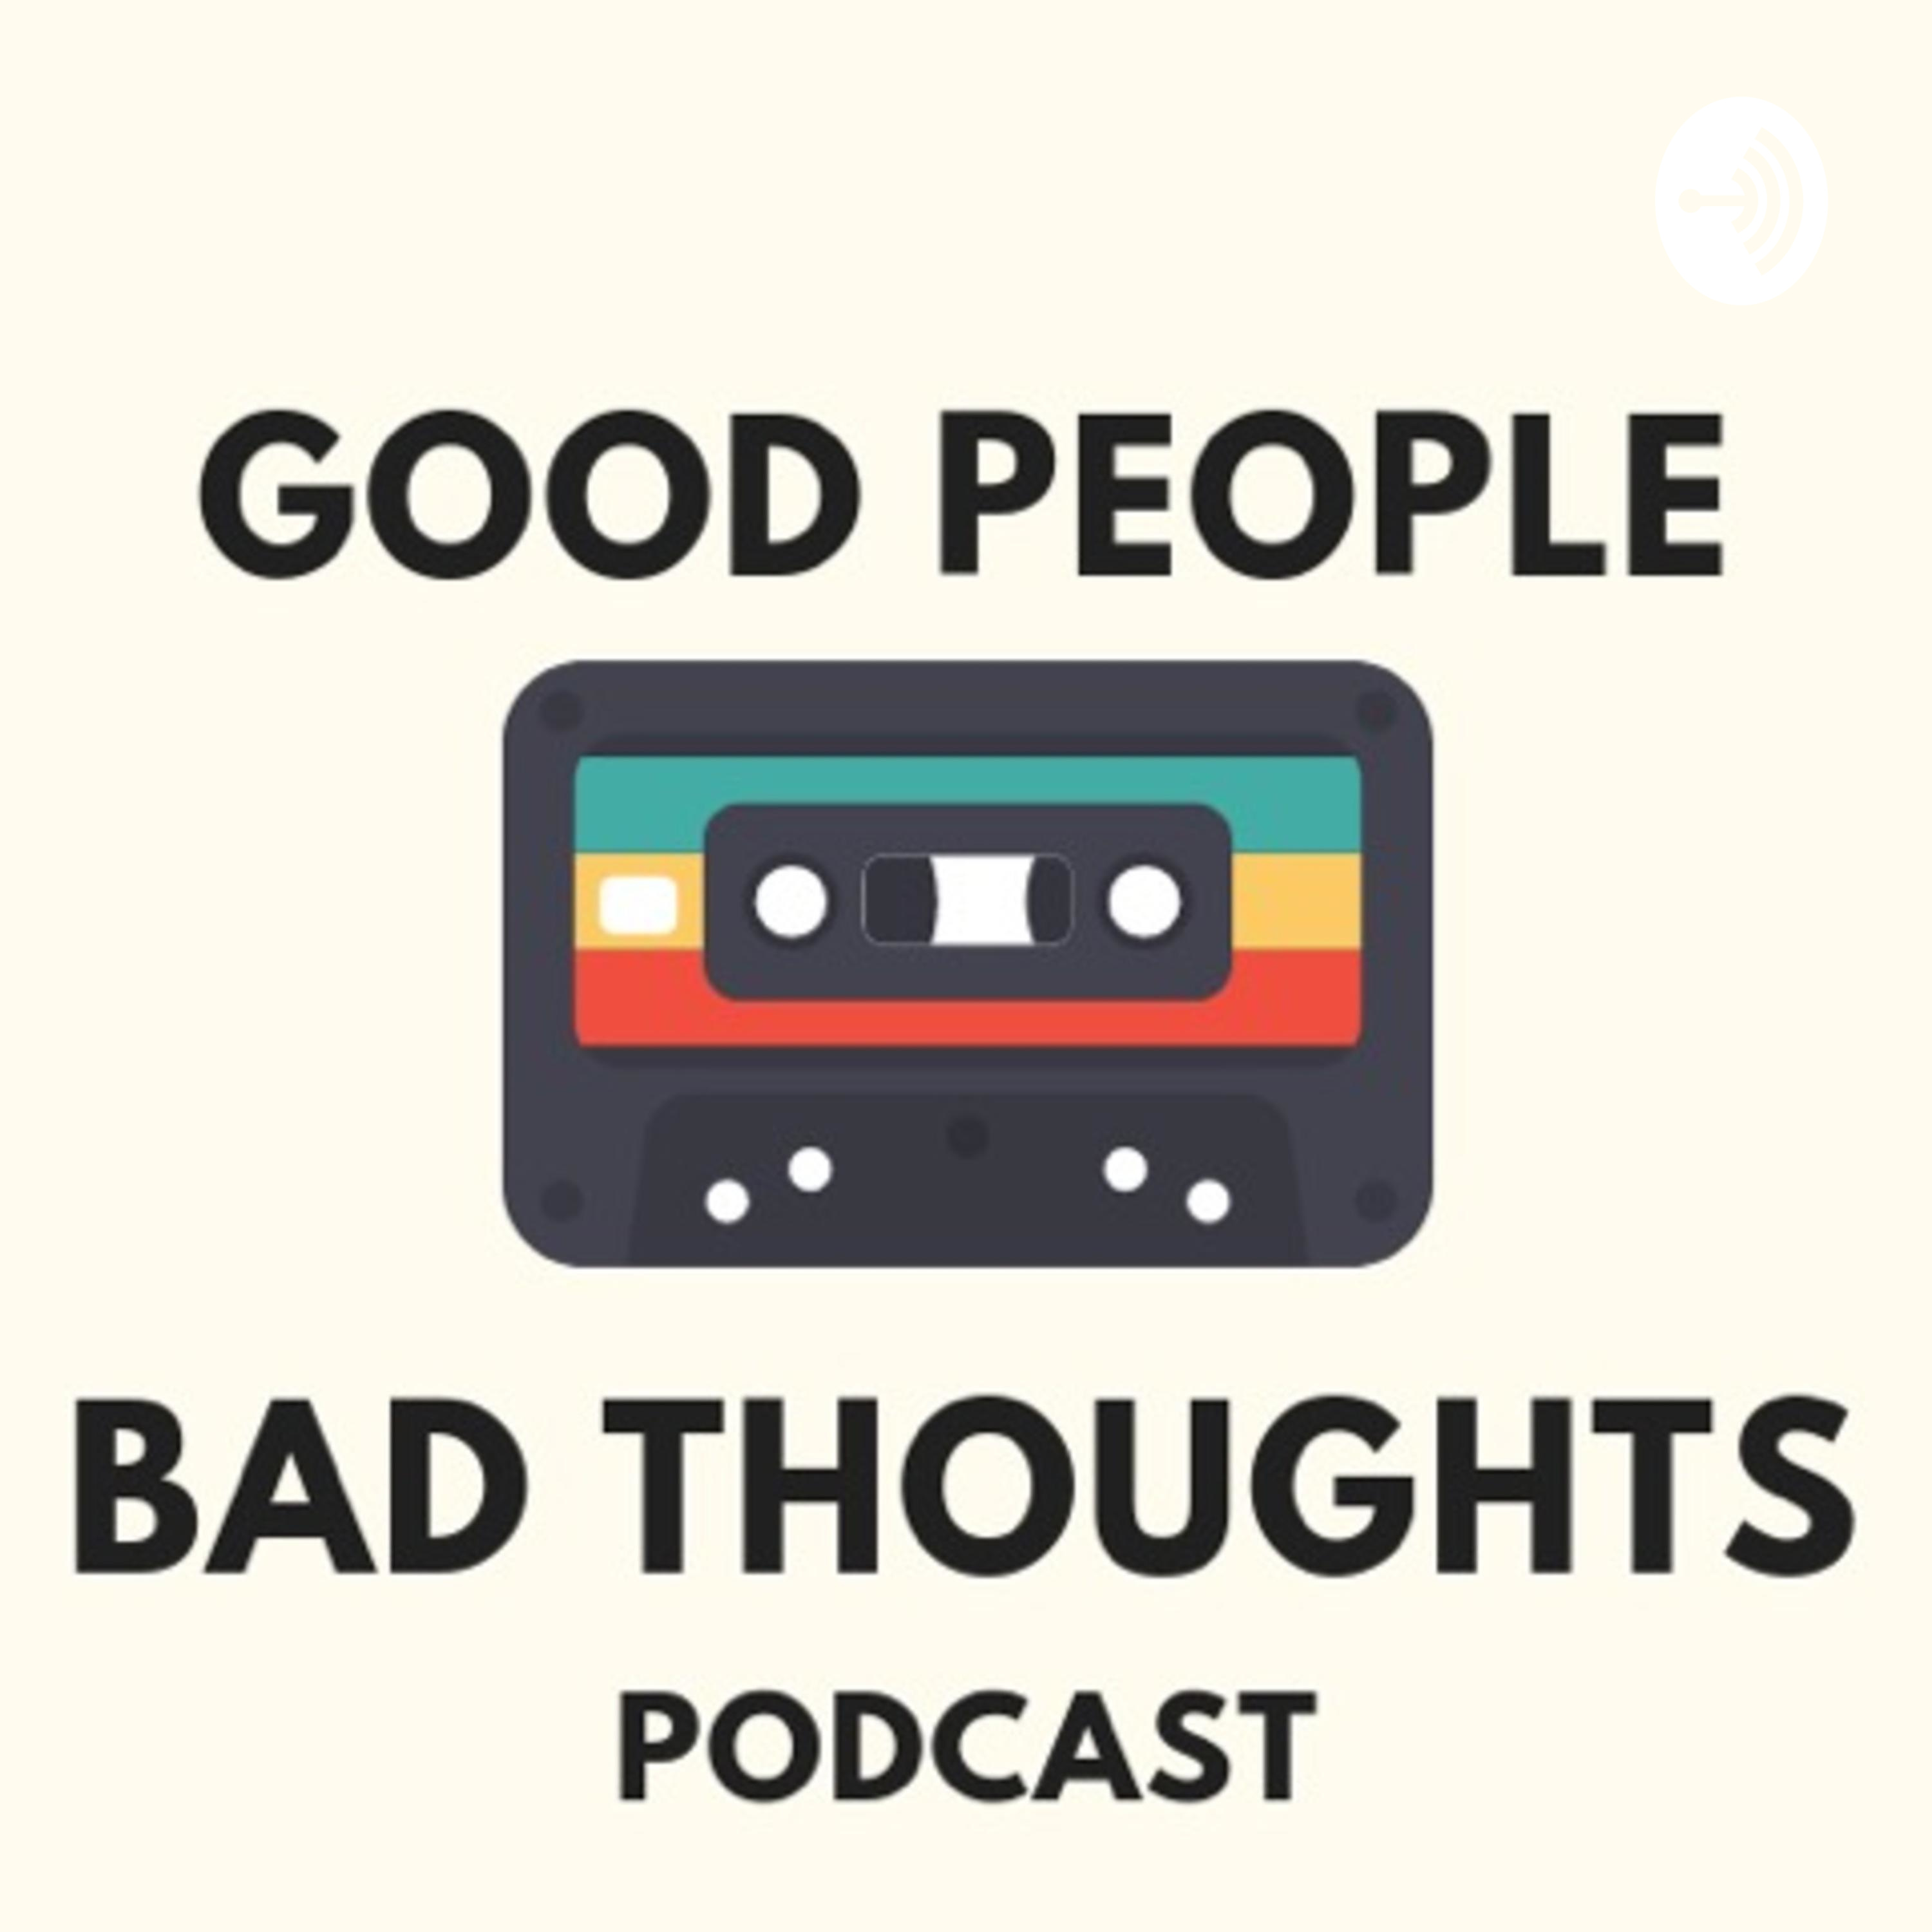 Making the Best of a Bad Situation: Good People Bad Thoughts